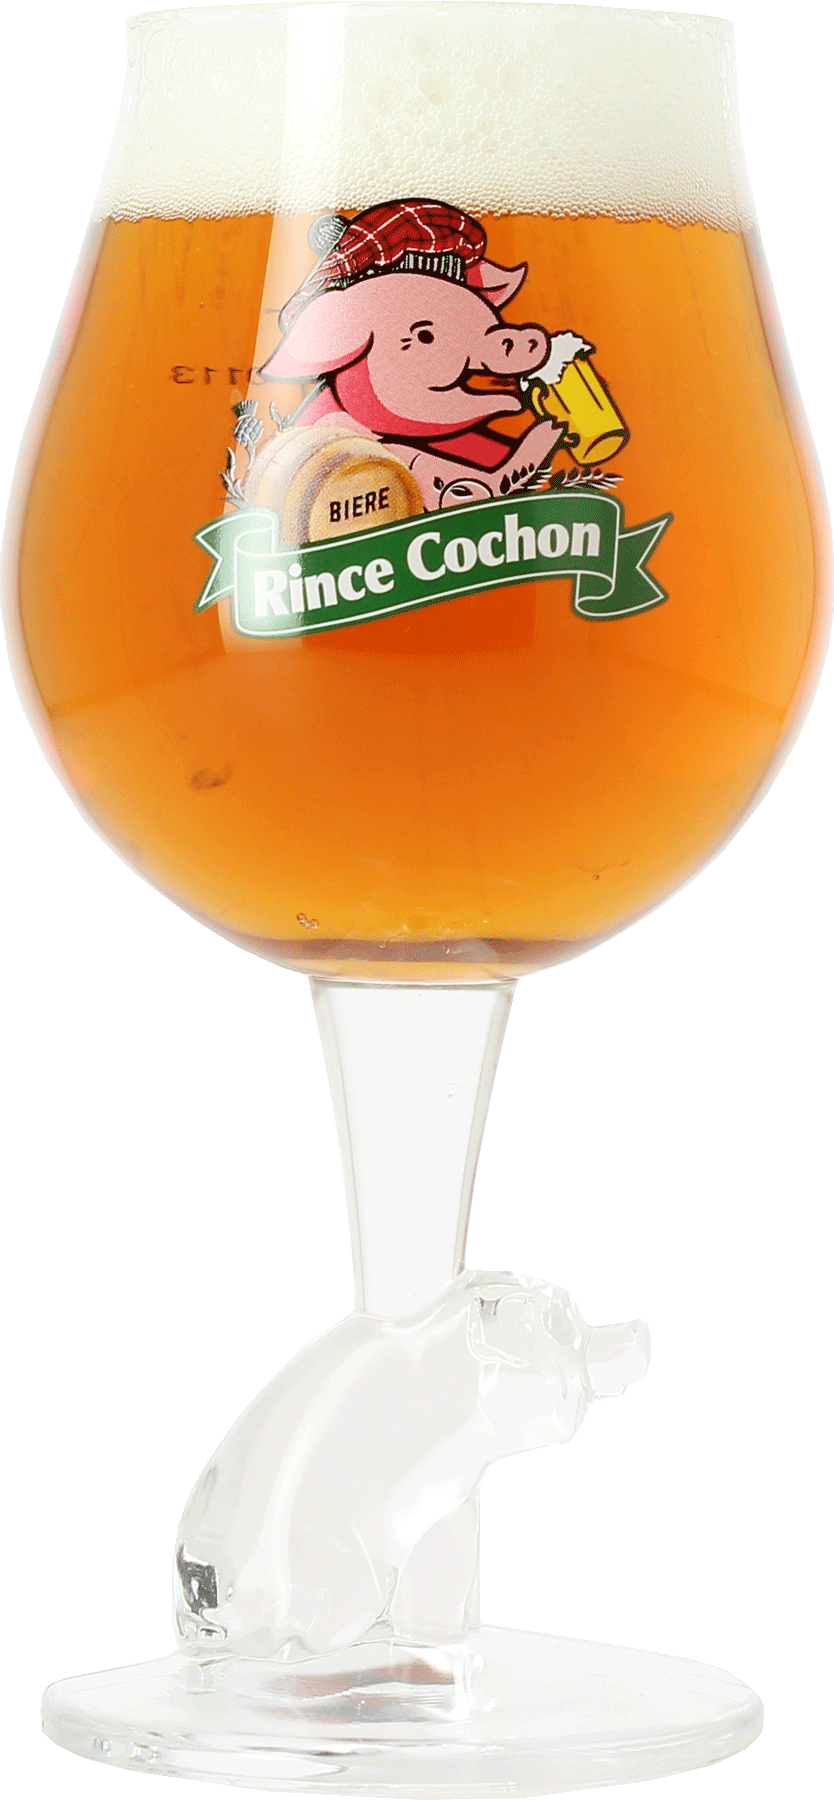 Copa Rince Cochon Whisky - 25 cl